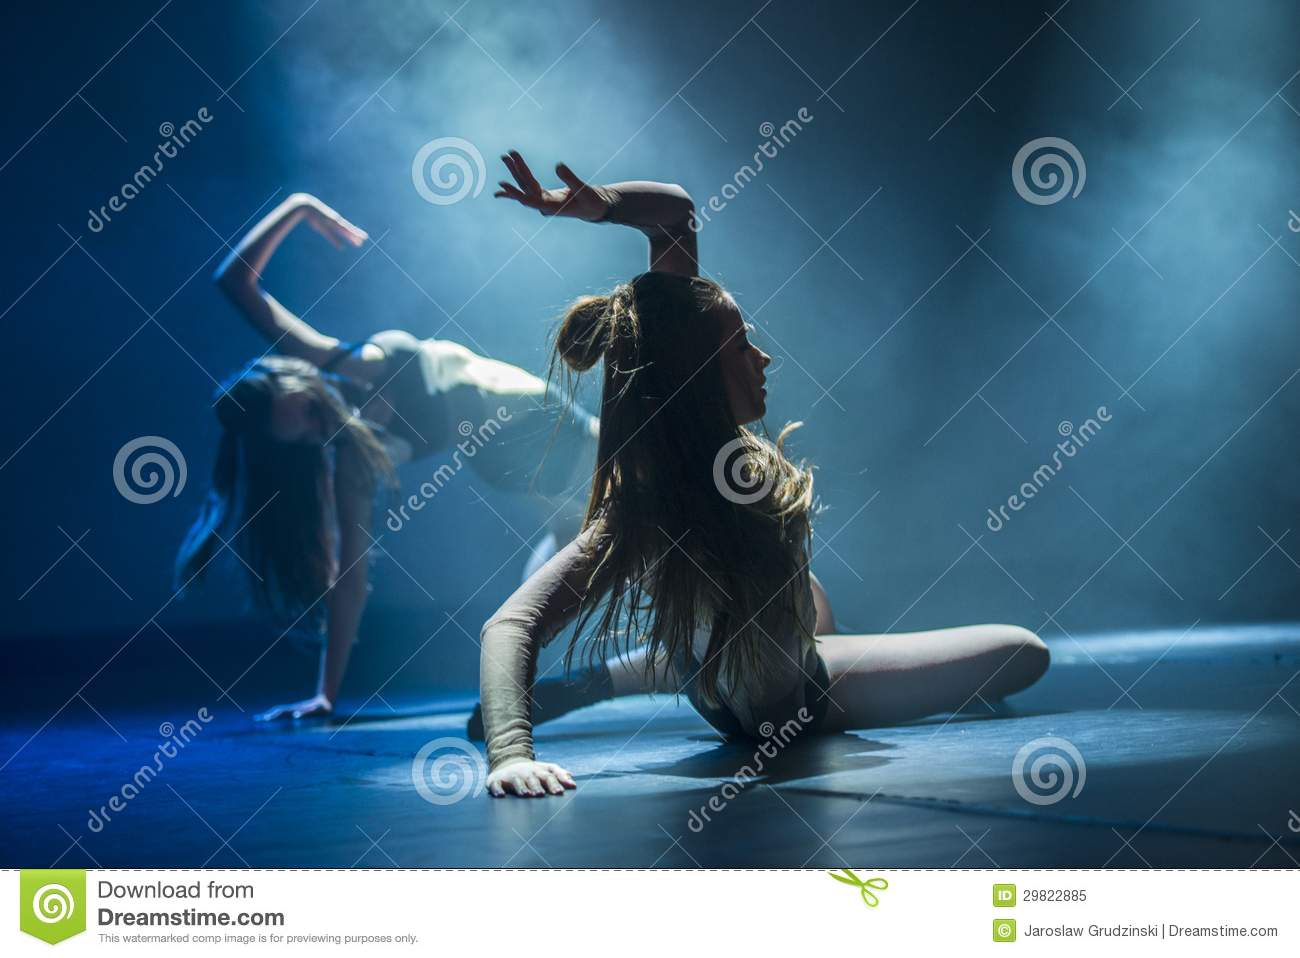 Dancers of Luz Dance Theatre perform on stage